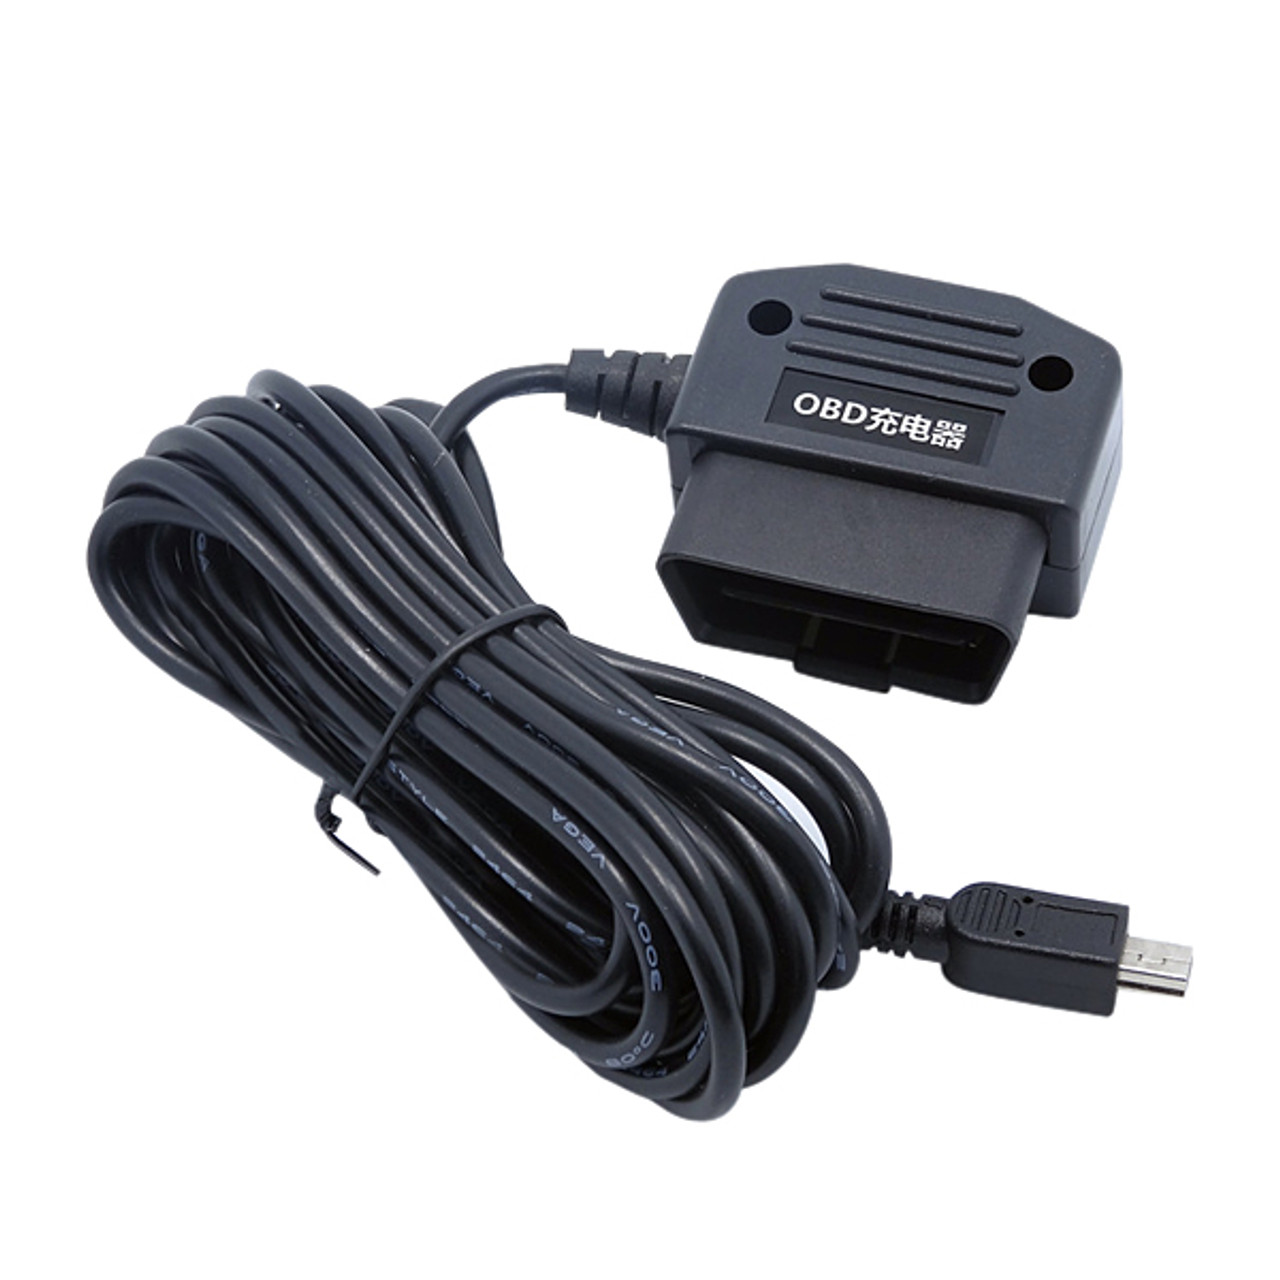 Obd2 16 Pin Male To Micro Usb Smart Charging Cable 5v 2 5a